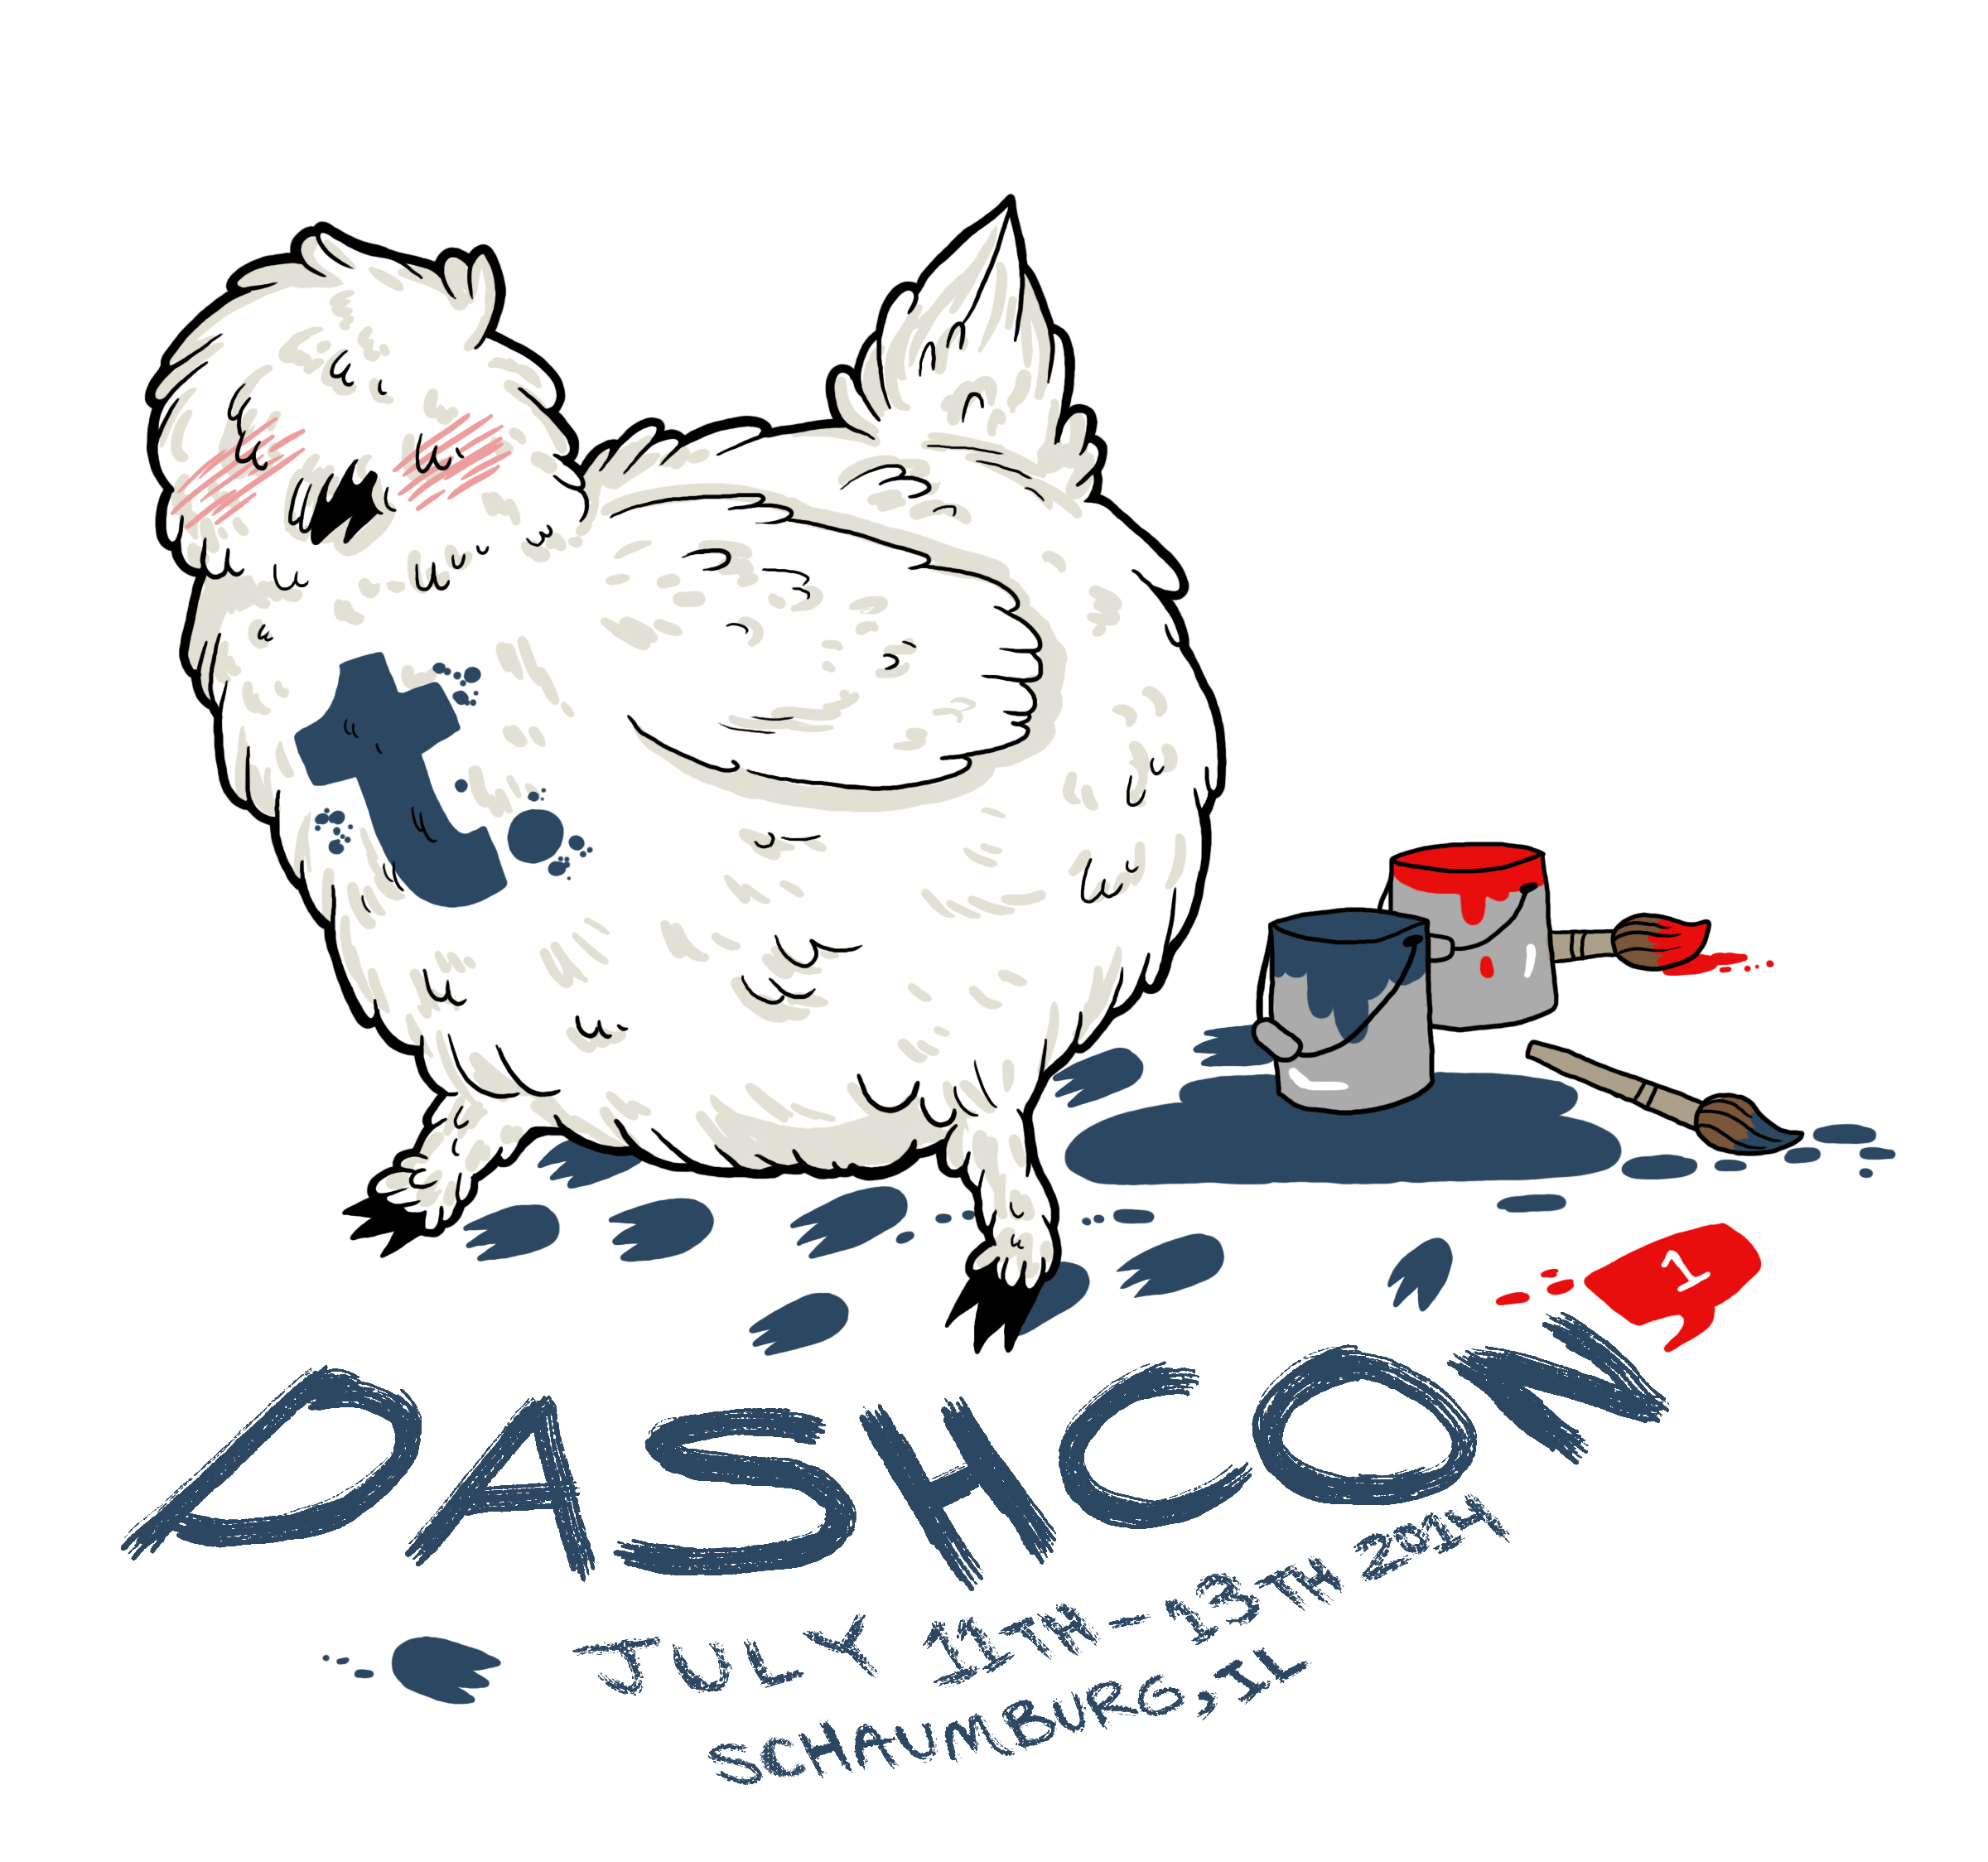 Dashcon 2014